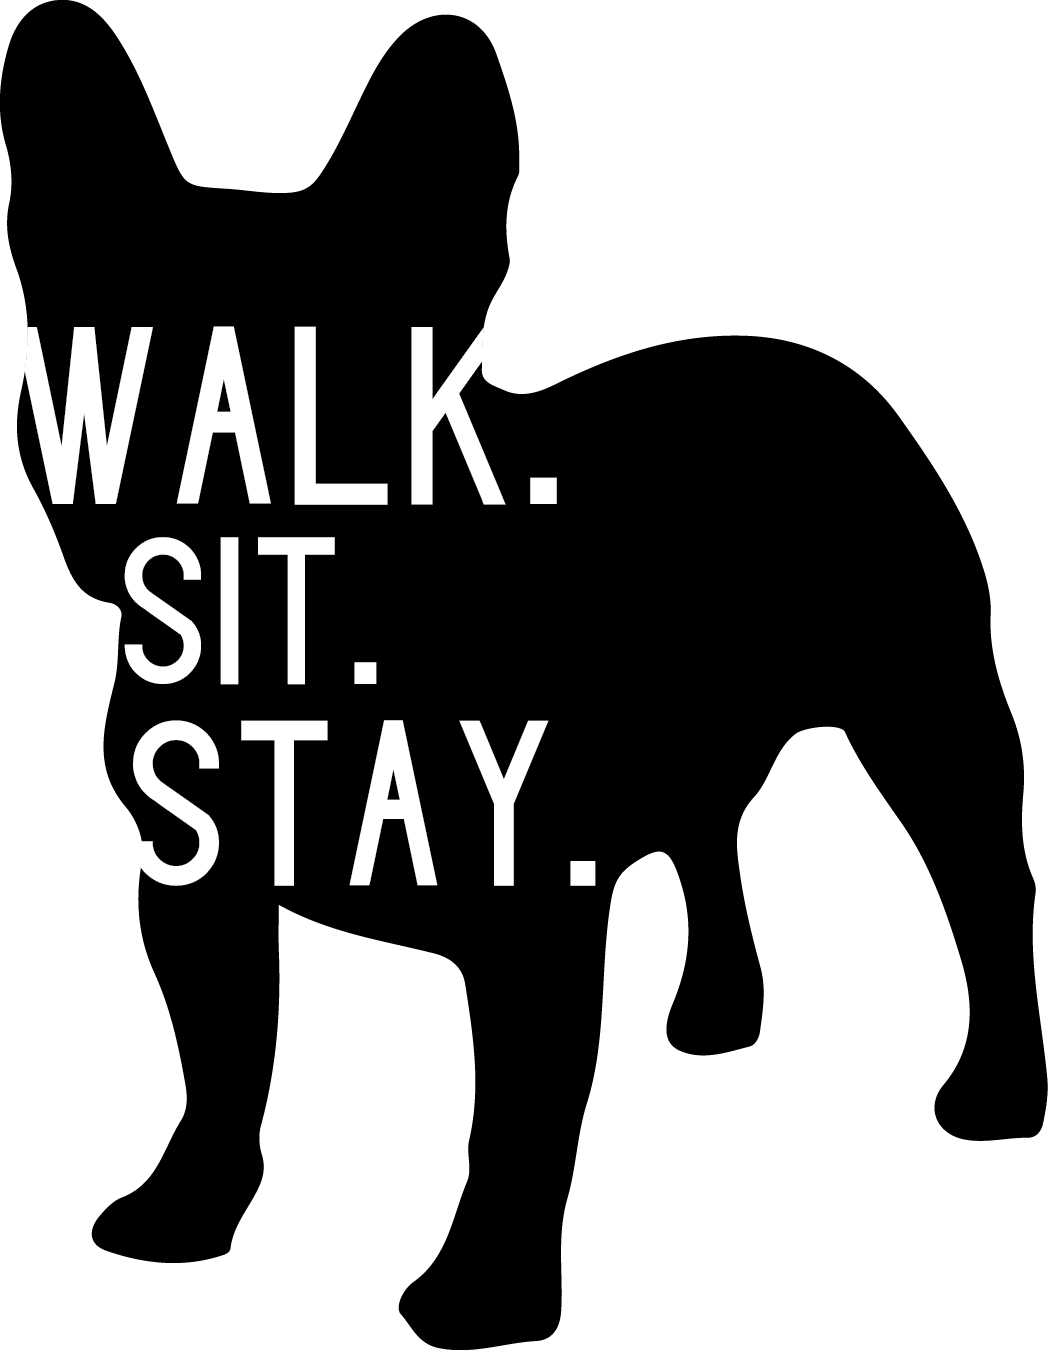 Pet clipart home pet. Dog walking walk sit